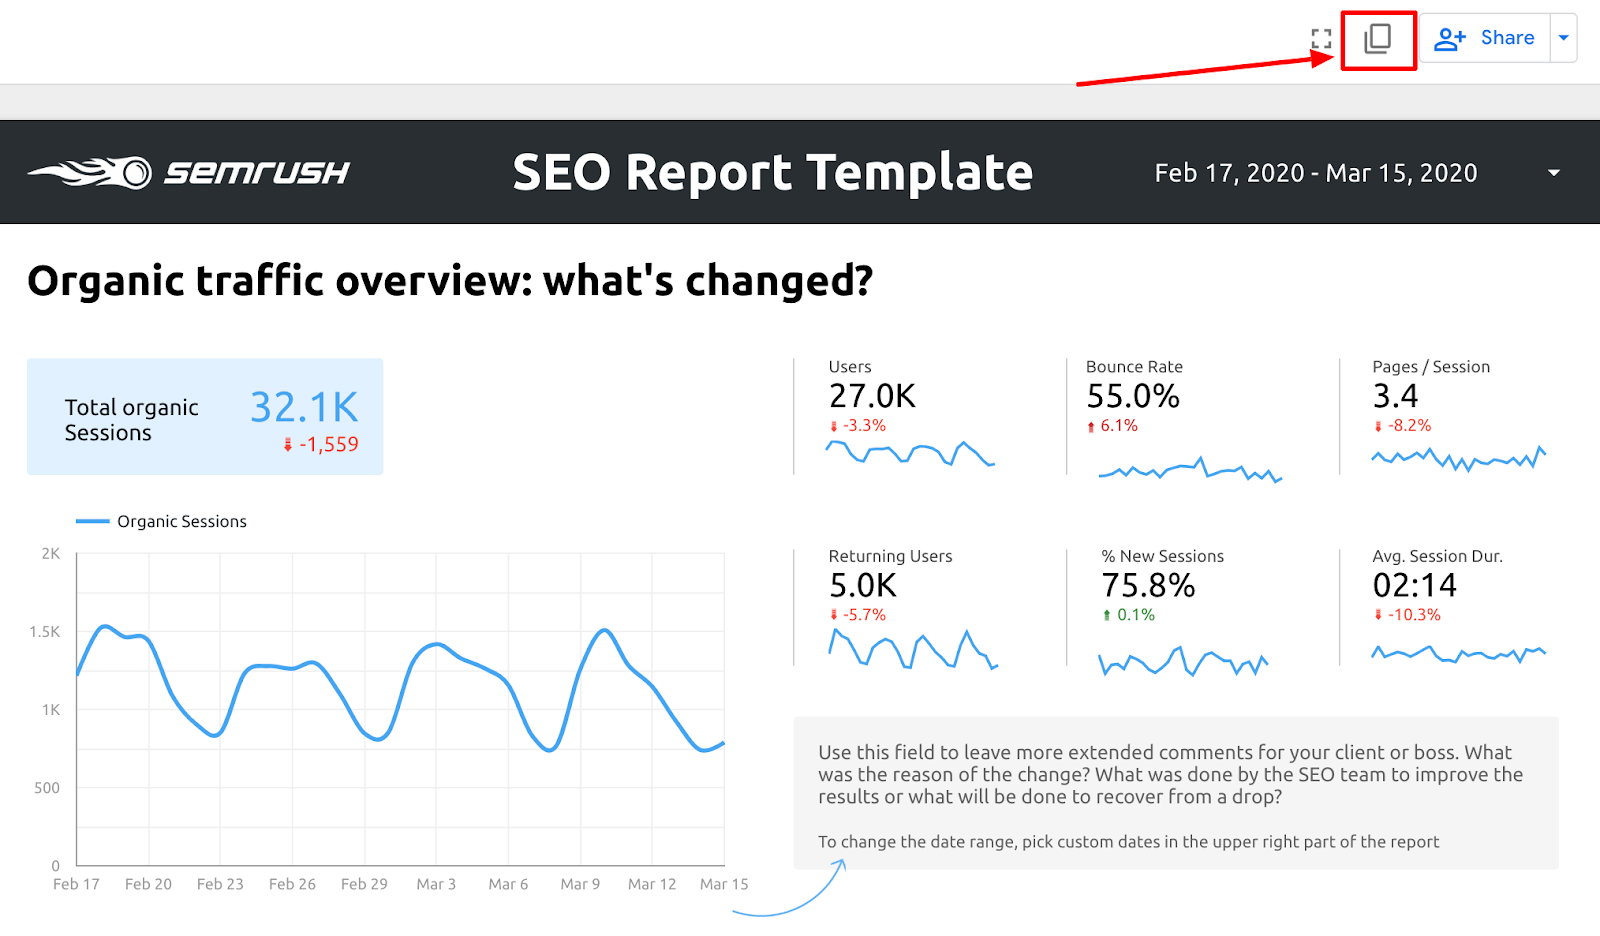 SEO Template: Copying the Report